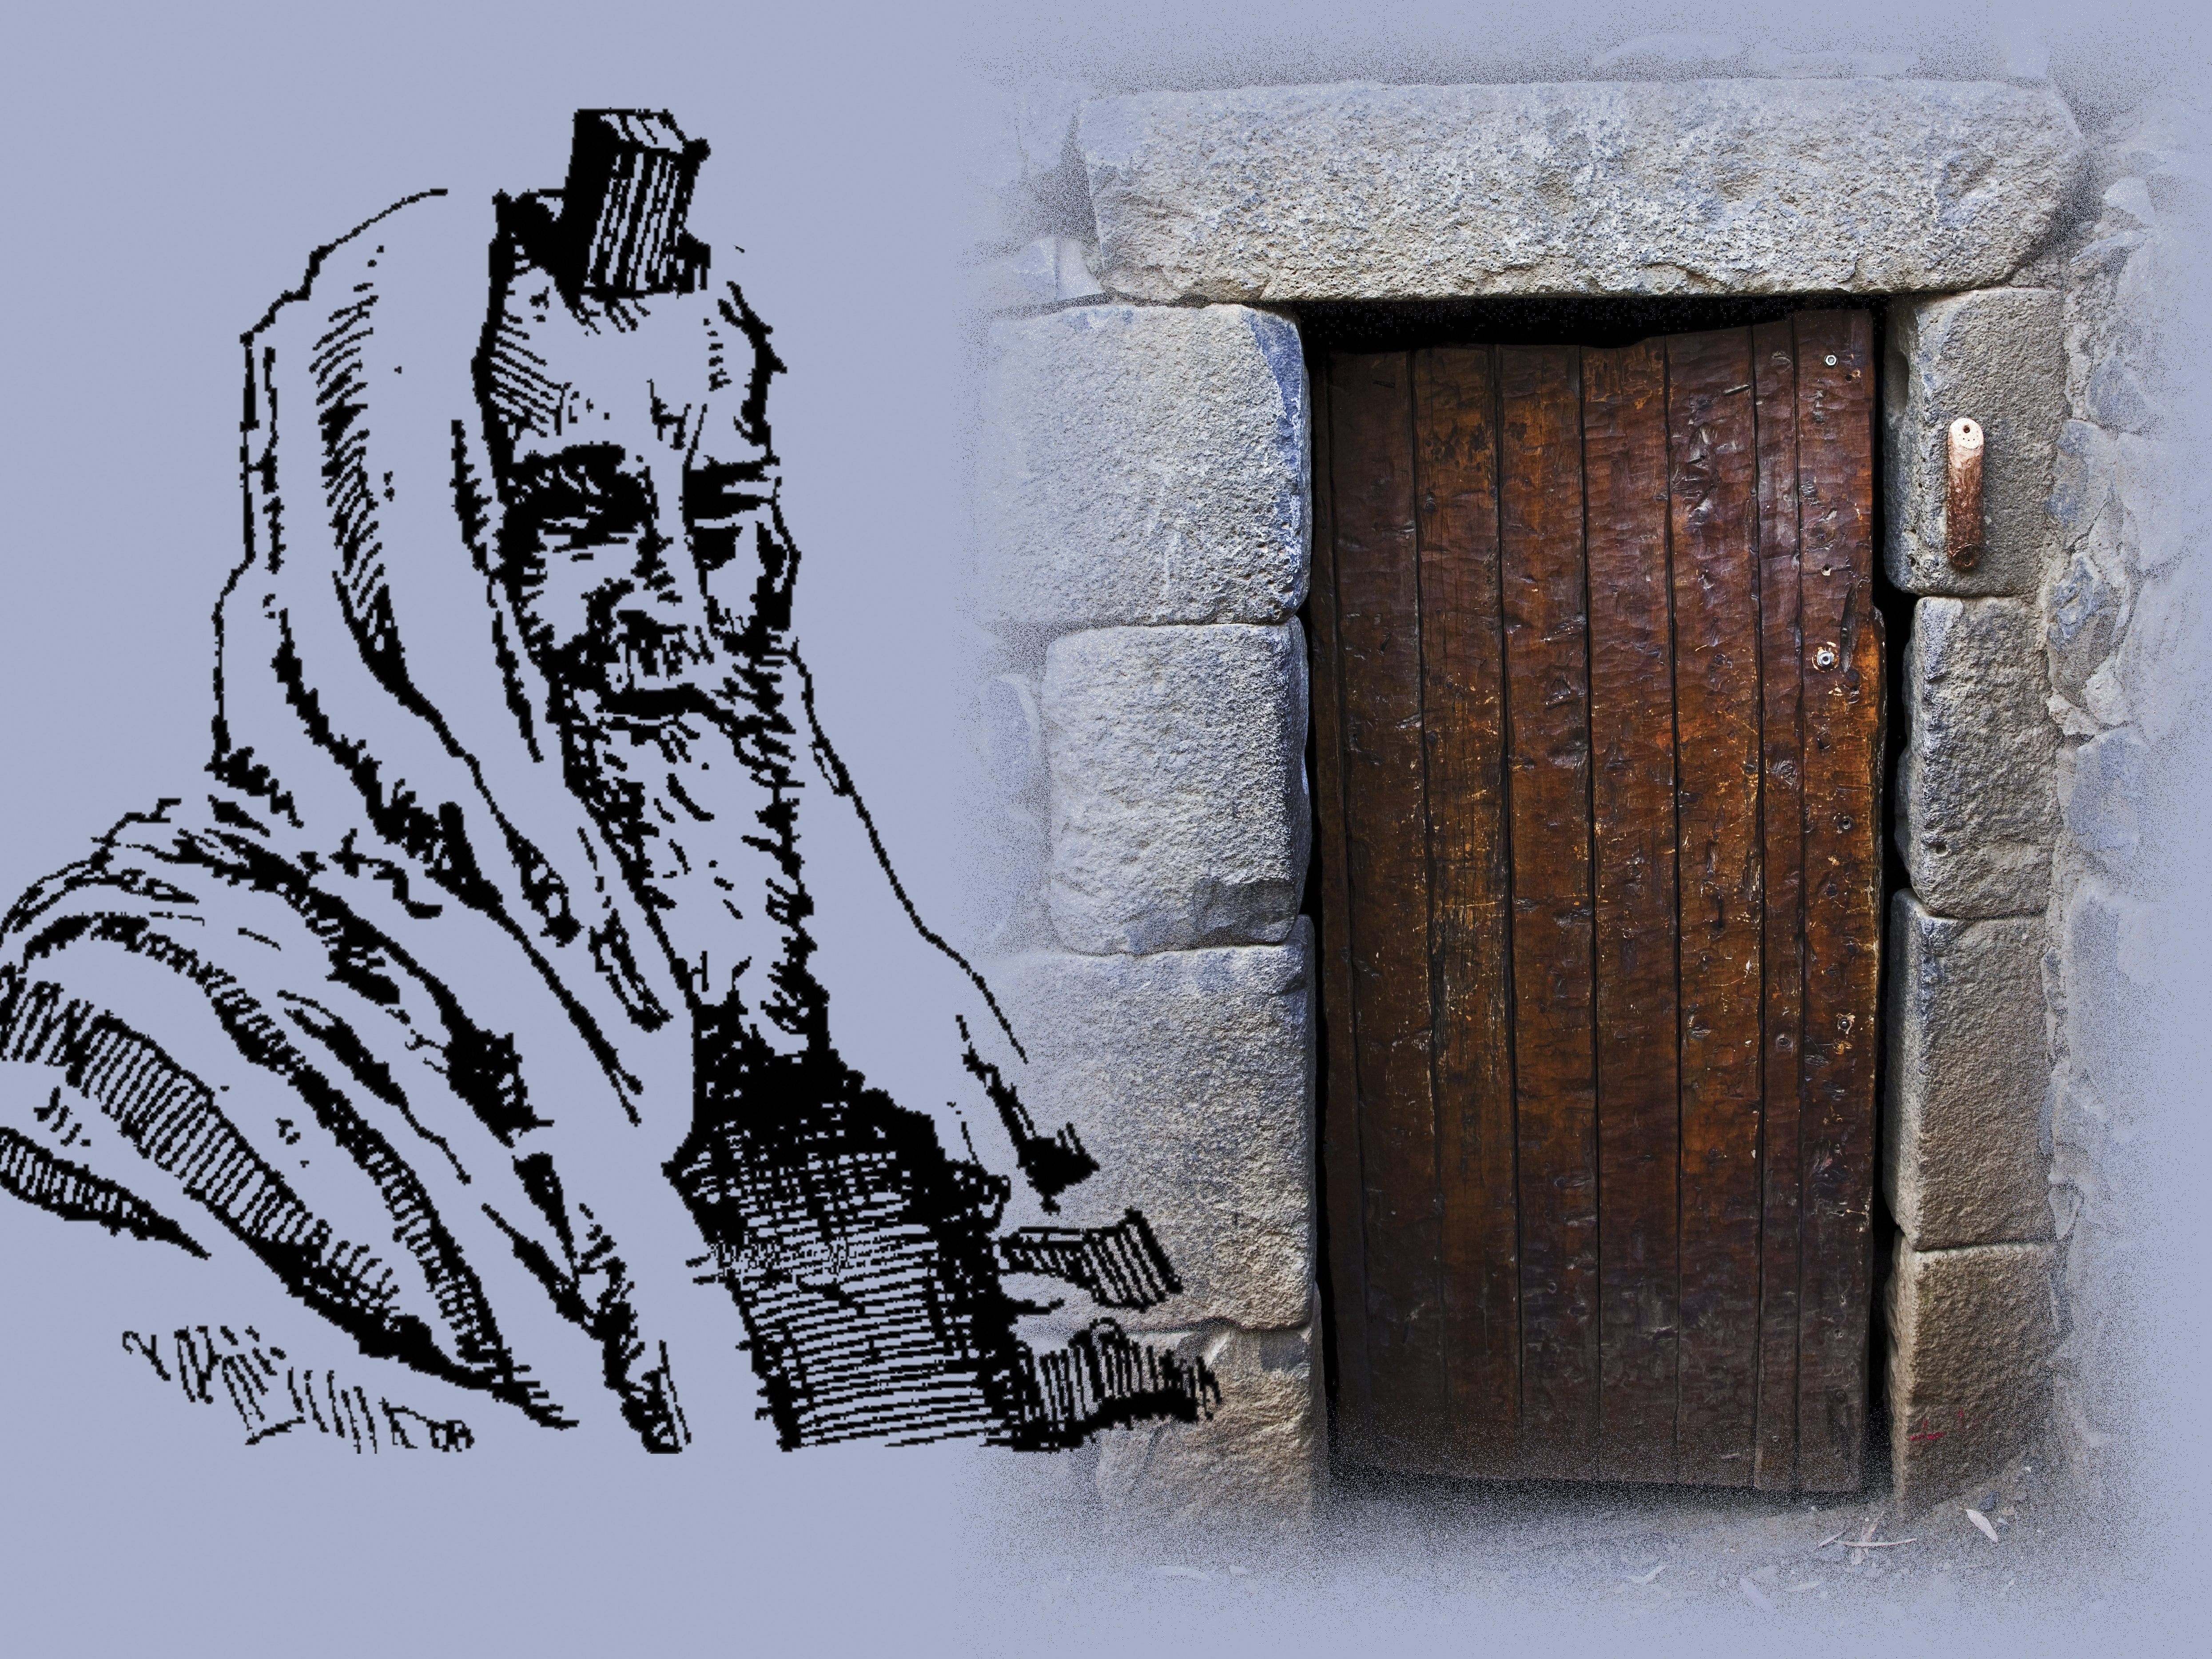 A composite image of a drawing of a man wearing a phylactery next to a photograph of a doorway with a mezuzah attached.